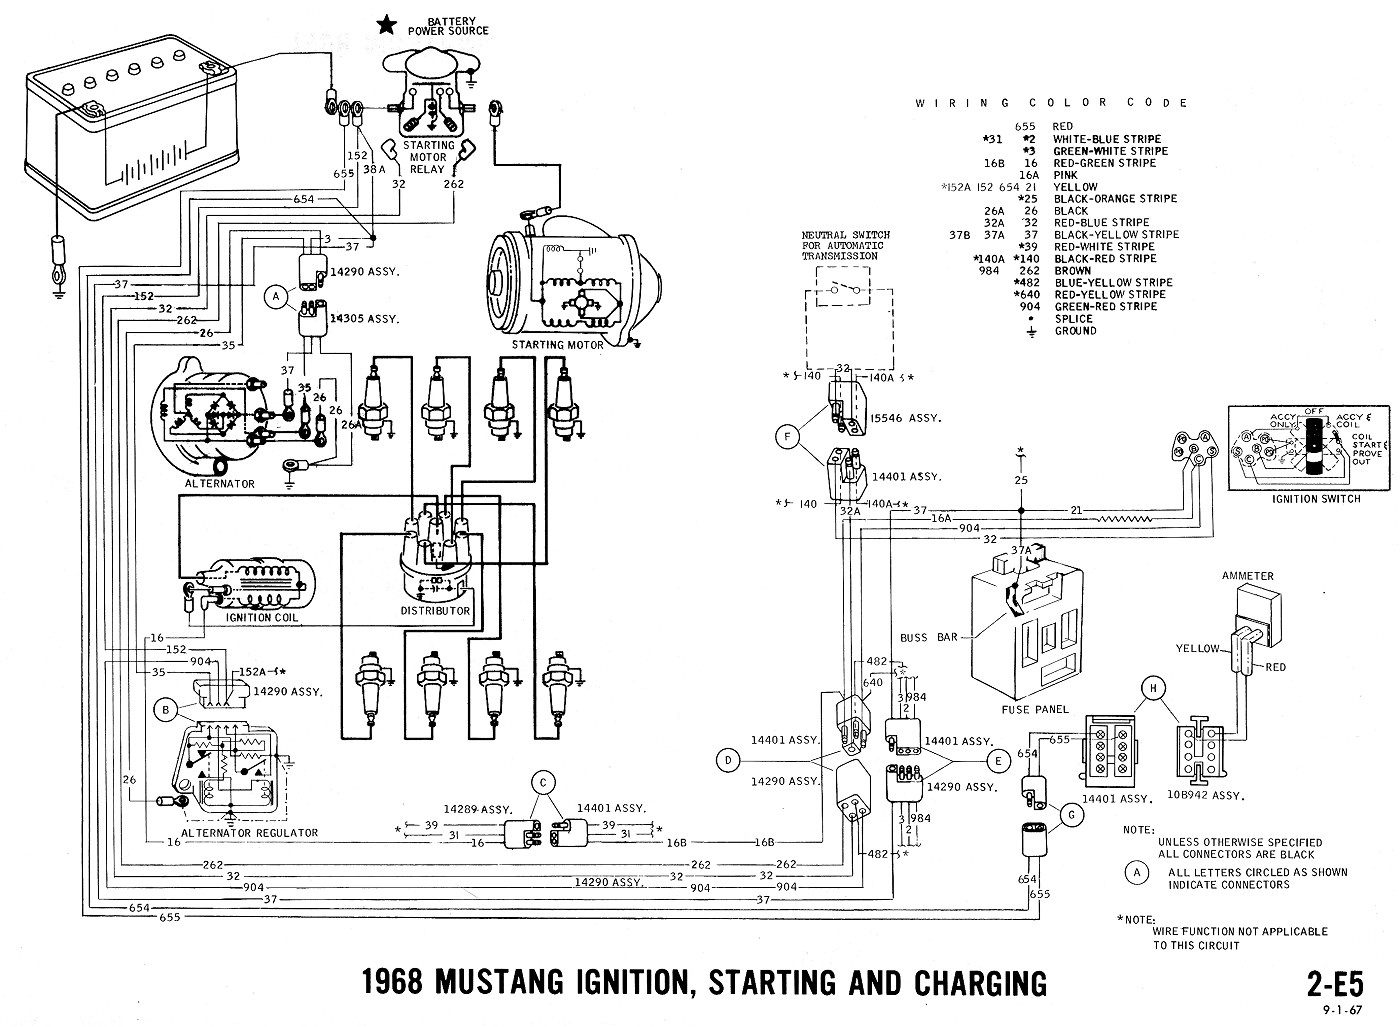 E5 1968 mustang wiring diagrams evolving software 1965 mustang wiring diagram pdf at couponss.co